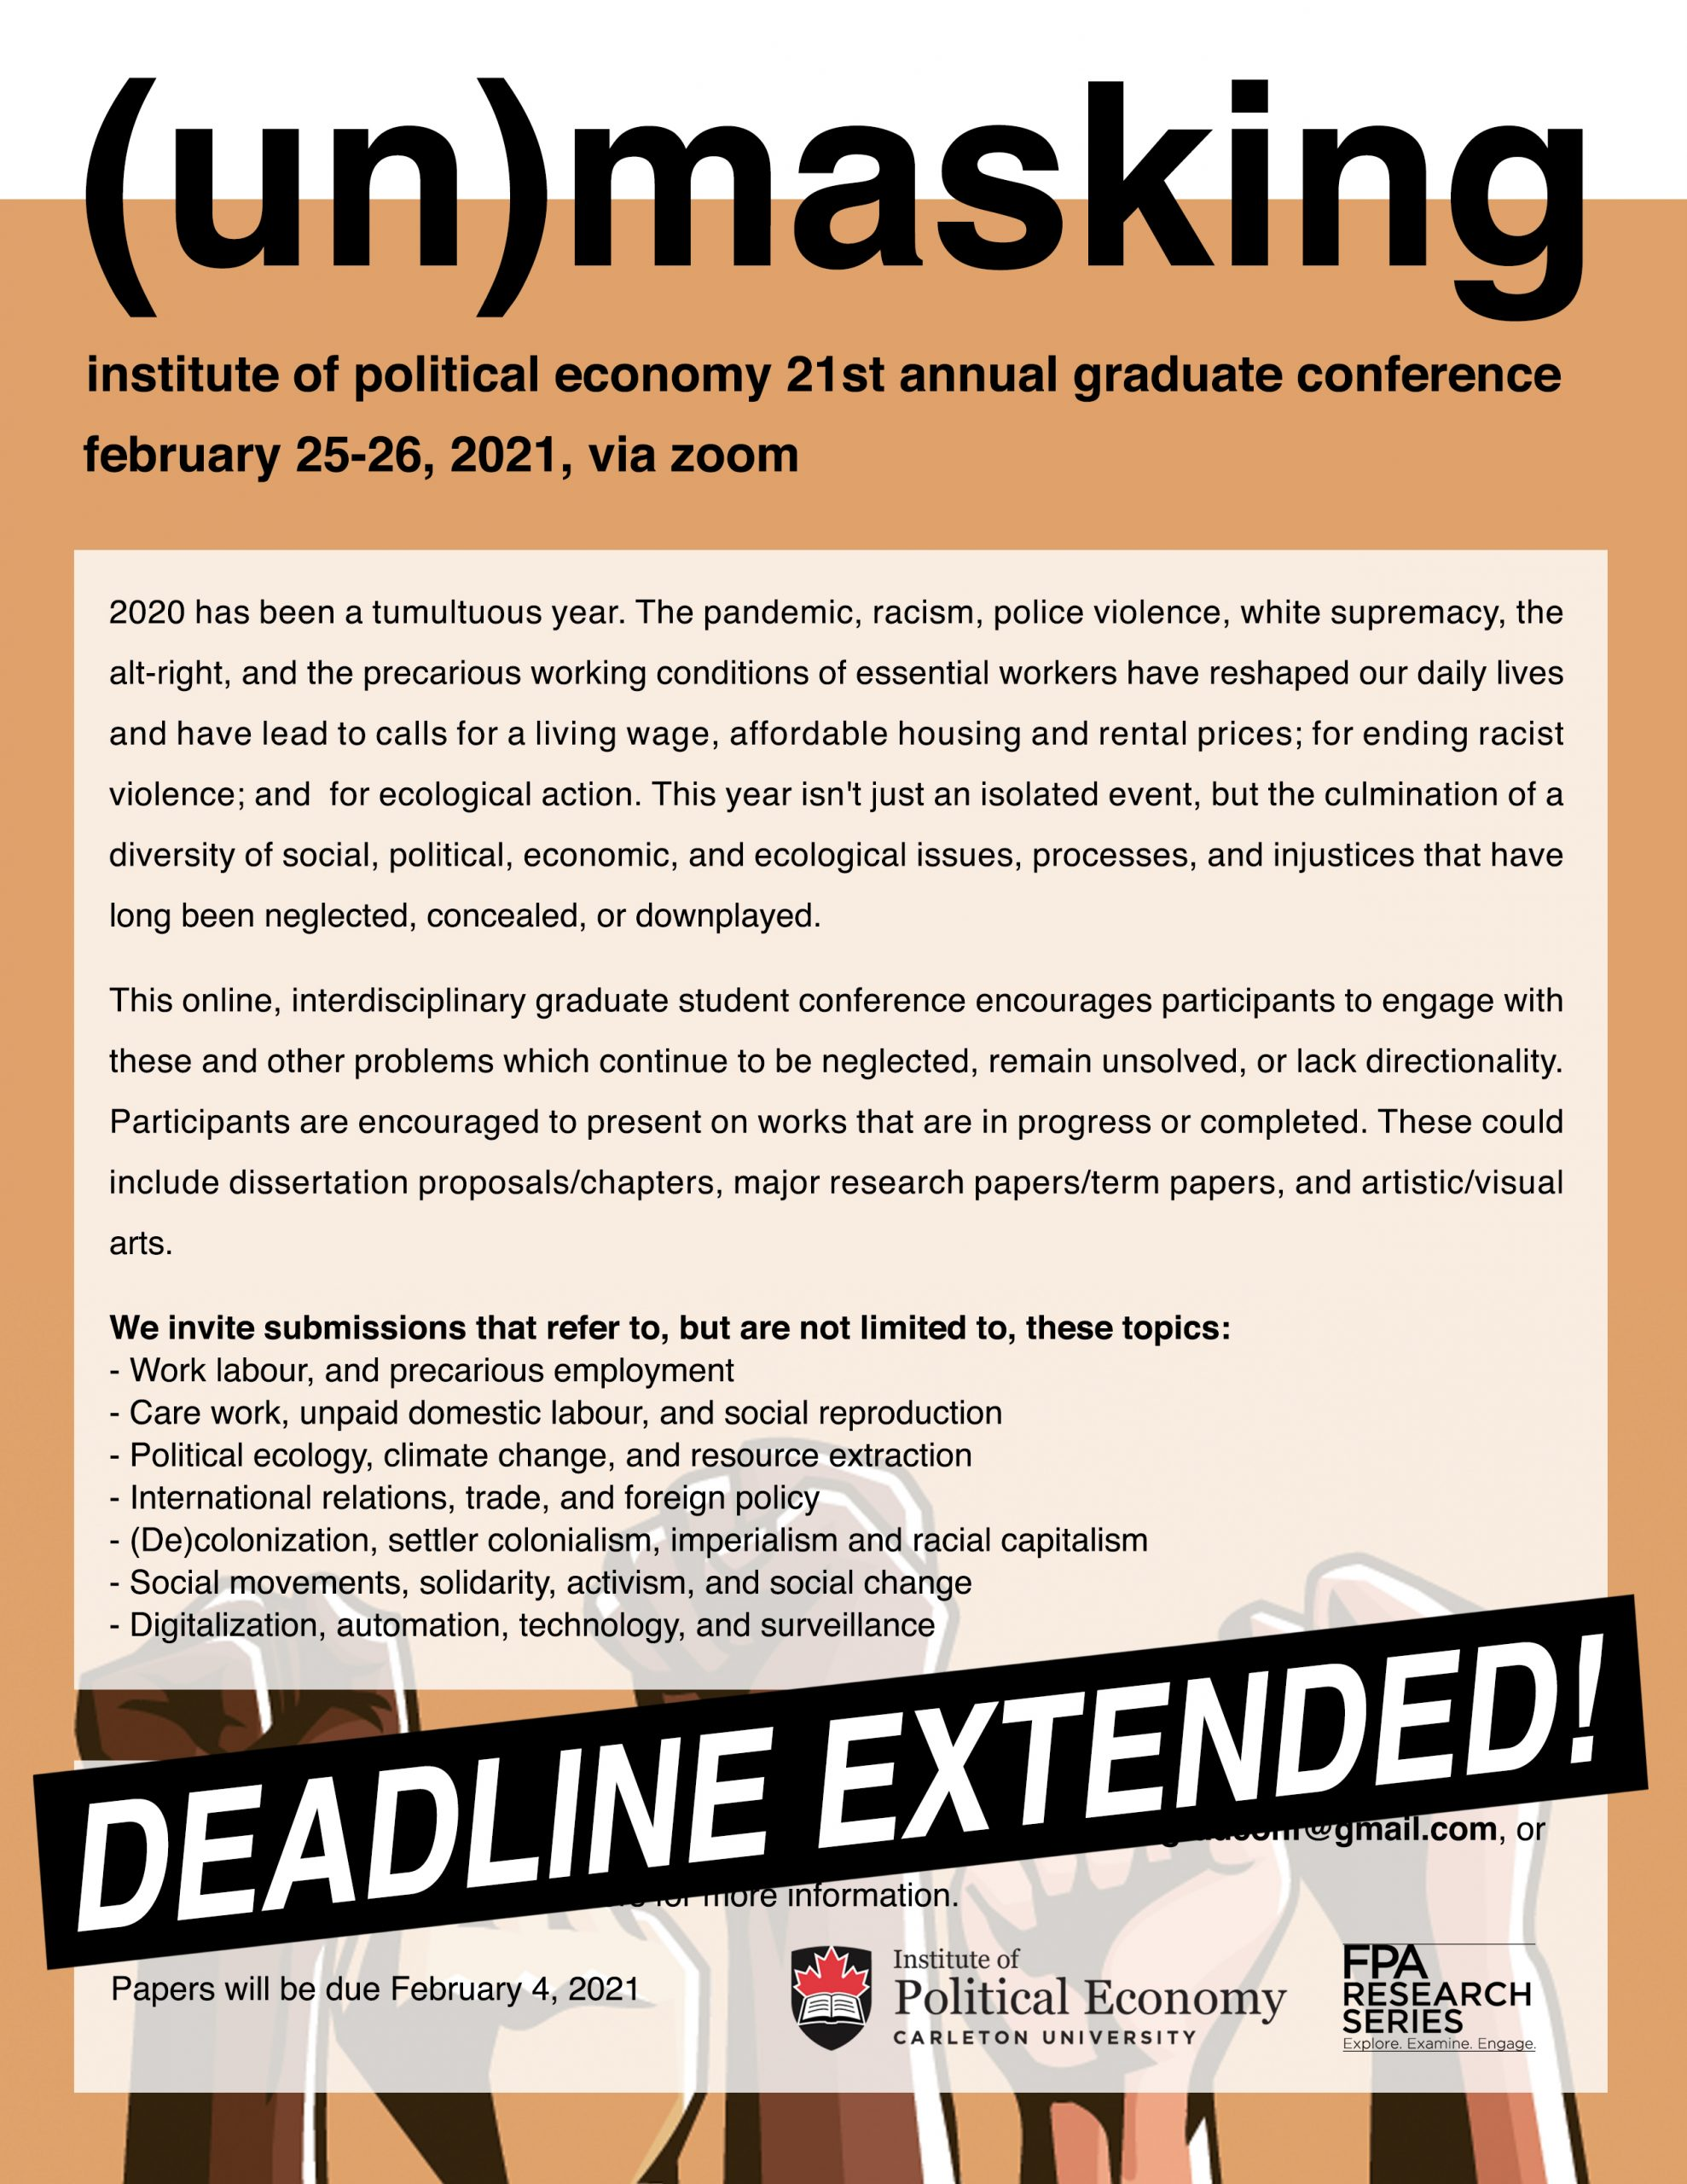 call for papers poster for (un)masking institute of political economy 21st annual graduate student conference with text overlaying images of several arms punch up! the text describes the theme for the conference and includes instruction and guidance for submitting abstracts. overlaying the entire poster is a banner that reads: deadline extended! the full text is copied below image in post.